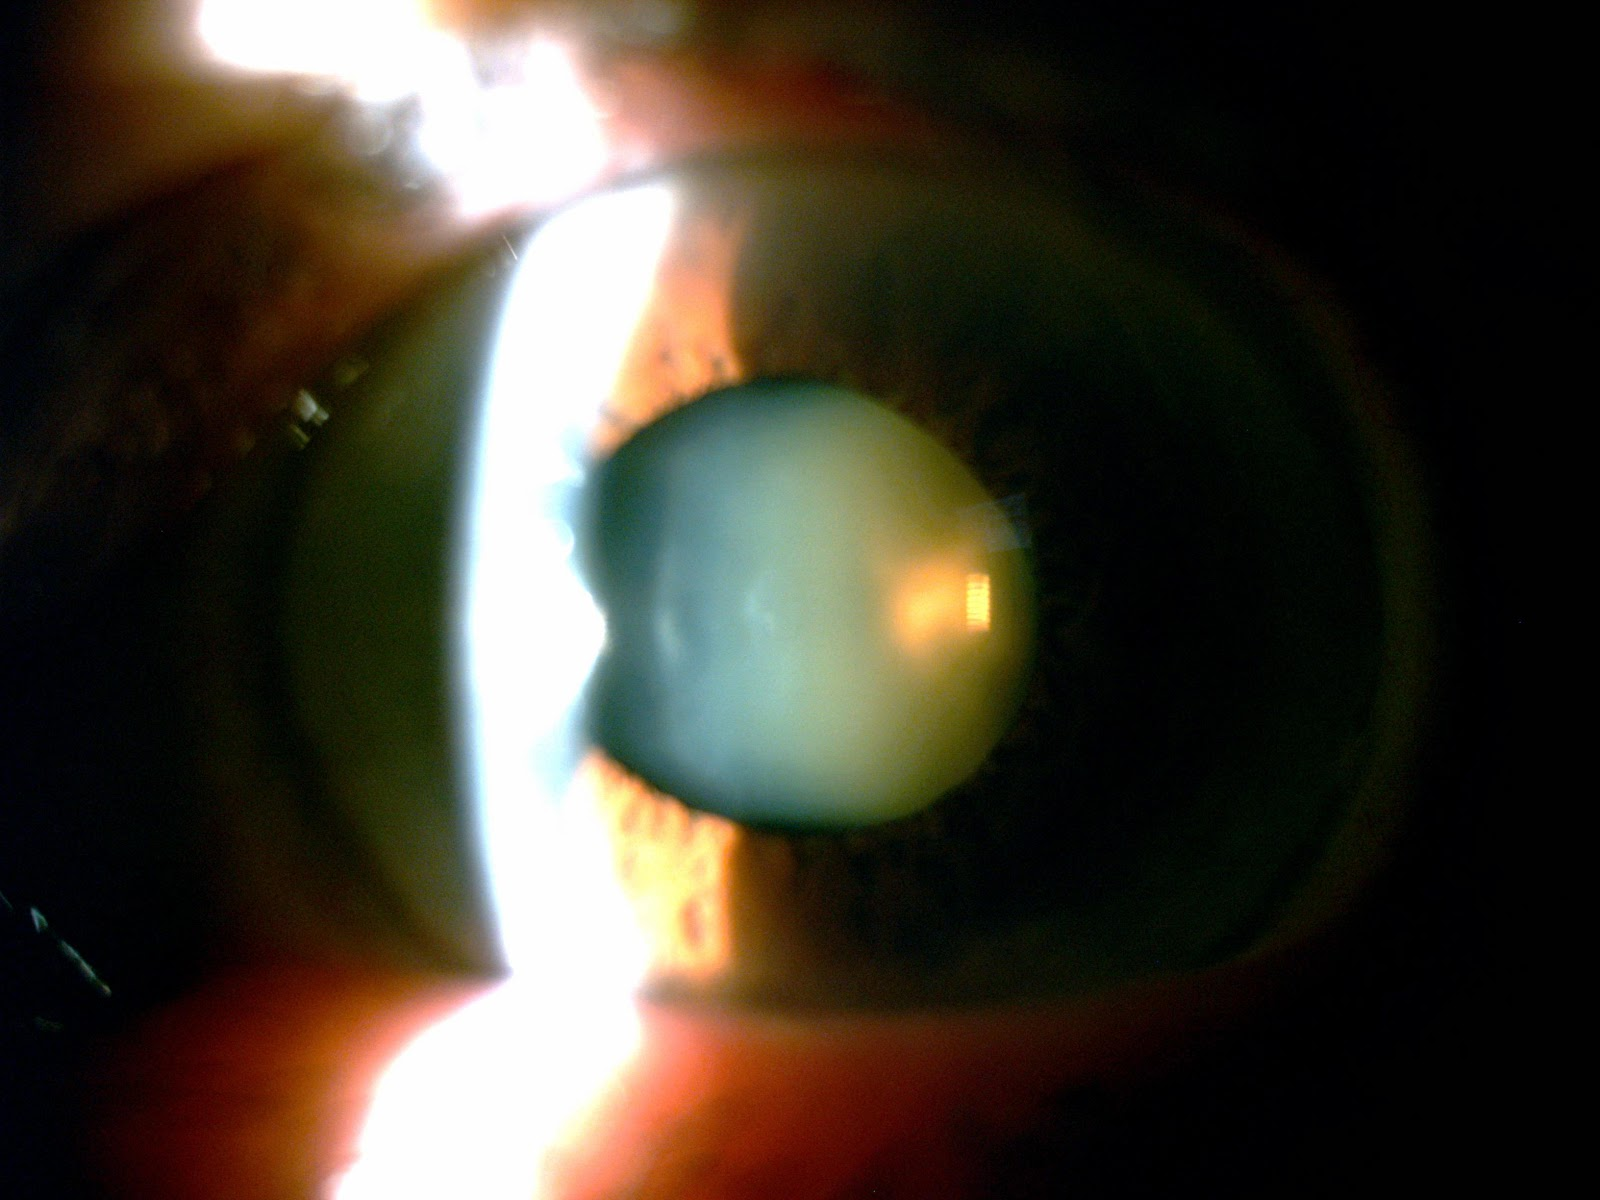 Vernon's Vision: Find The Cataract